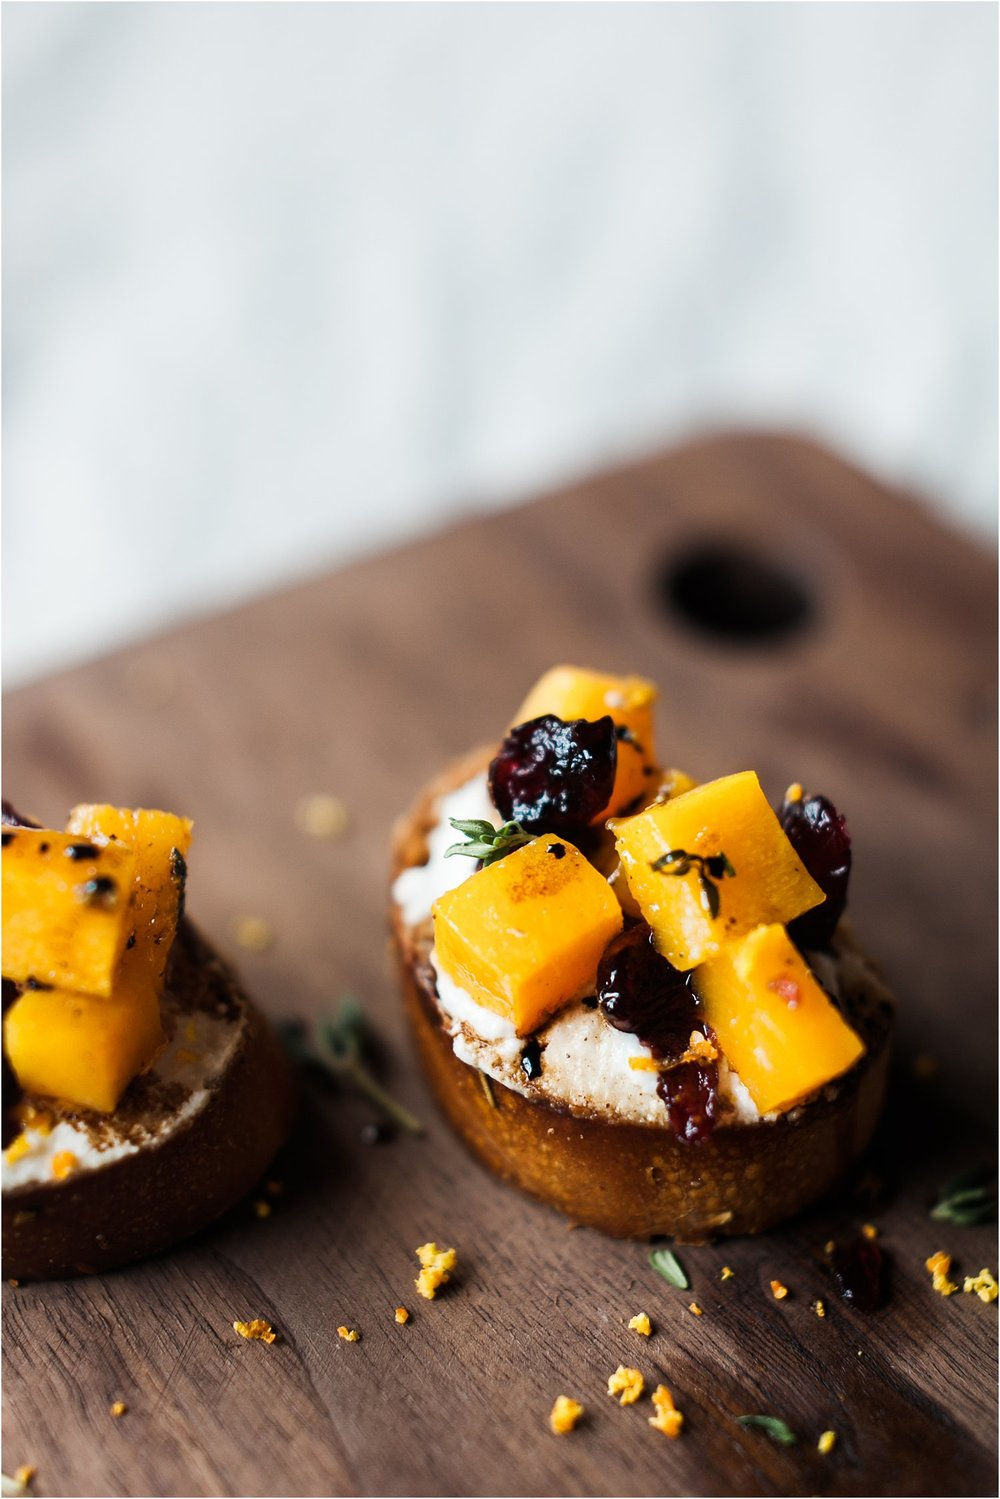 Butternut Squash Crostini with Orange Ricotta and Cranberries | Feast & Dwell